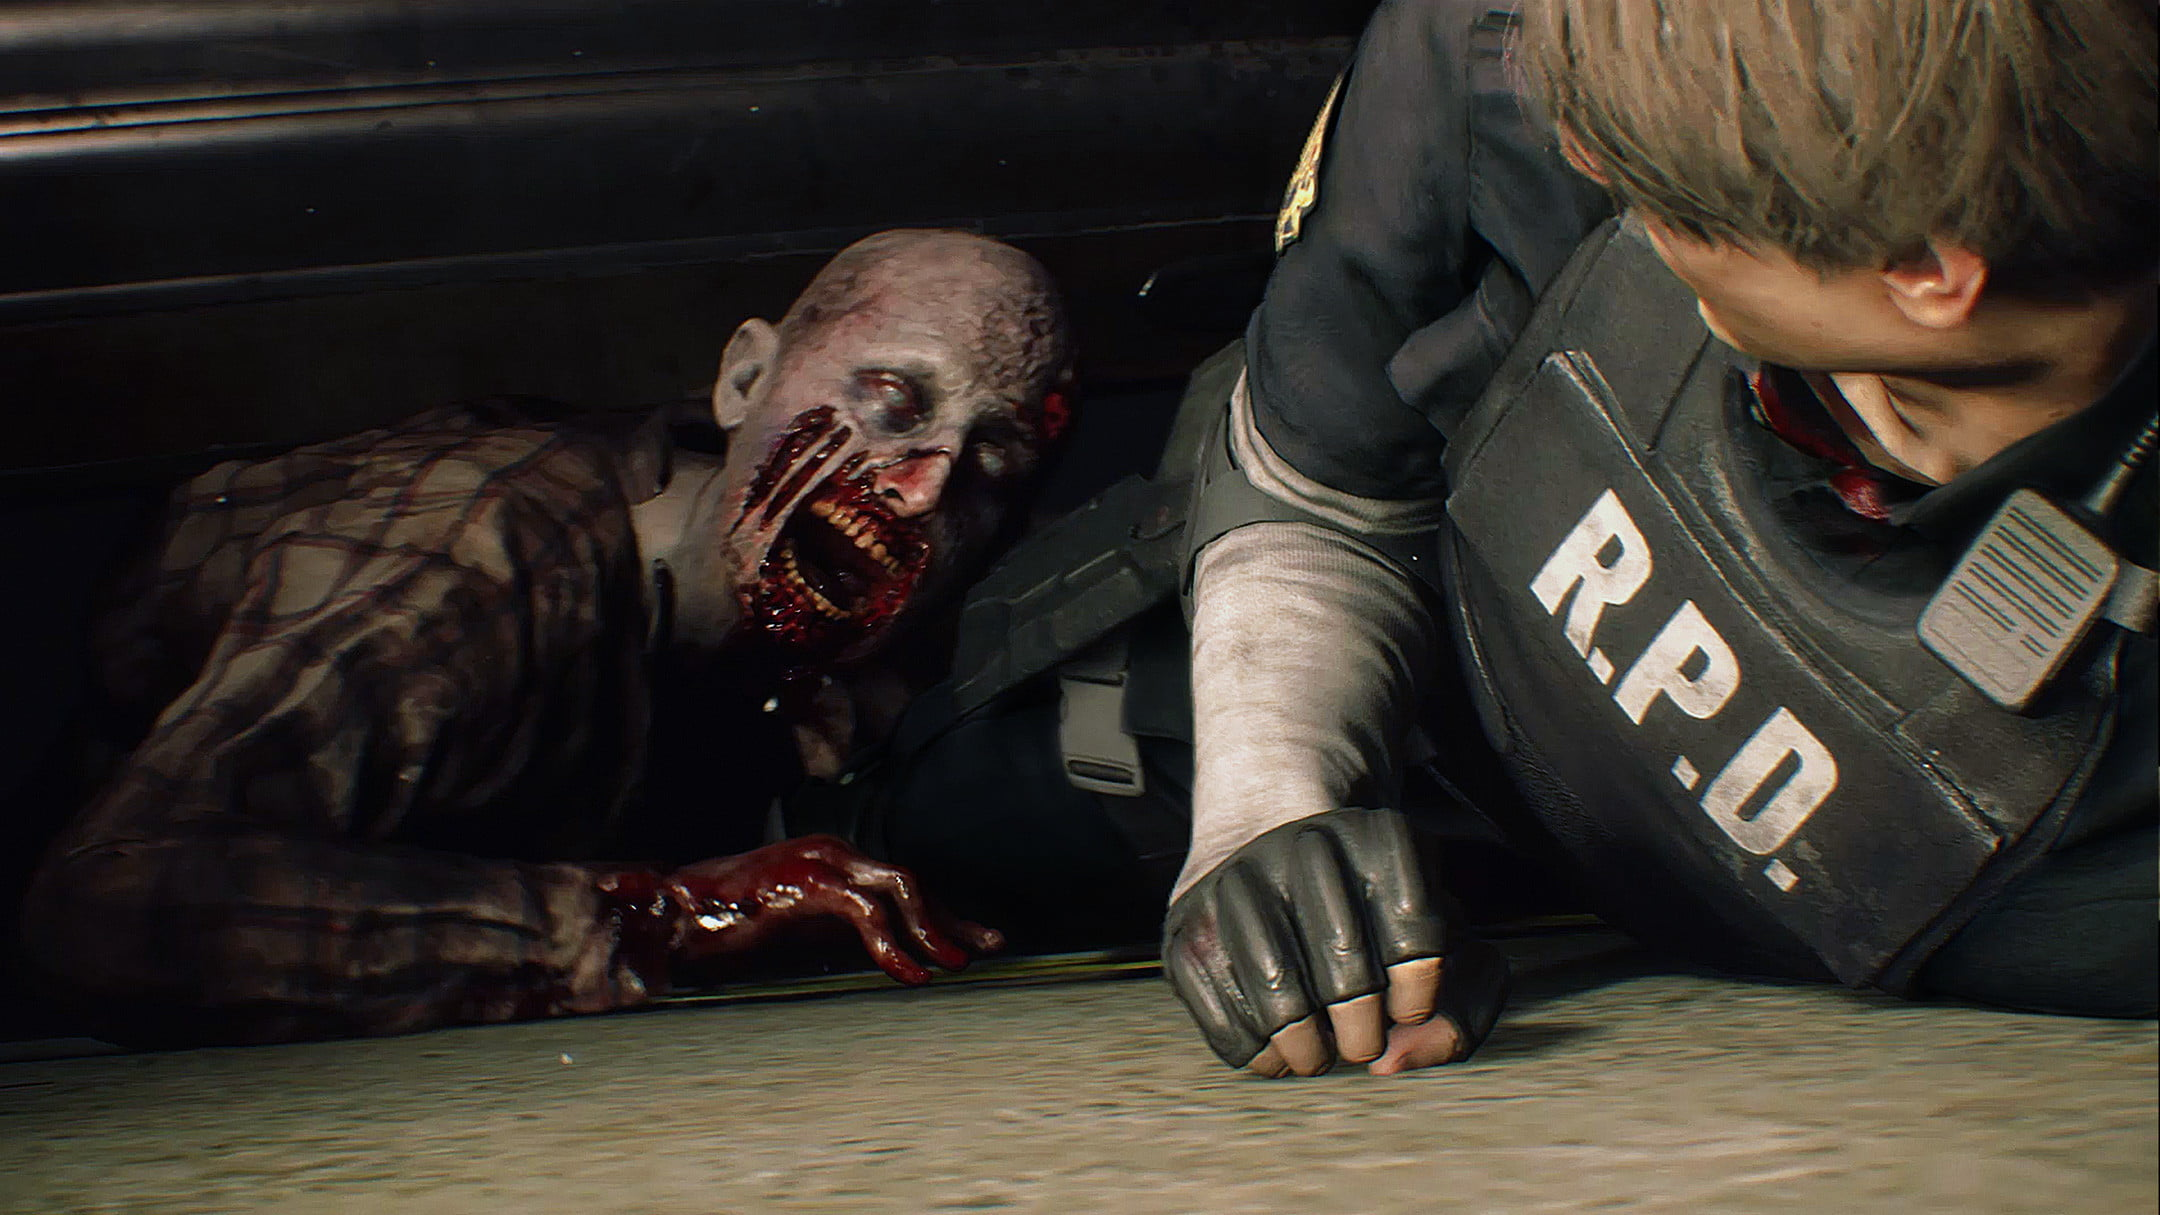 The Best Zombie Games of All Time, From Resident Evil to The Last of